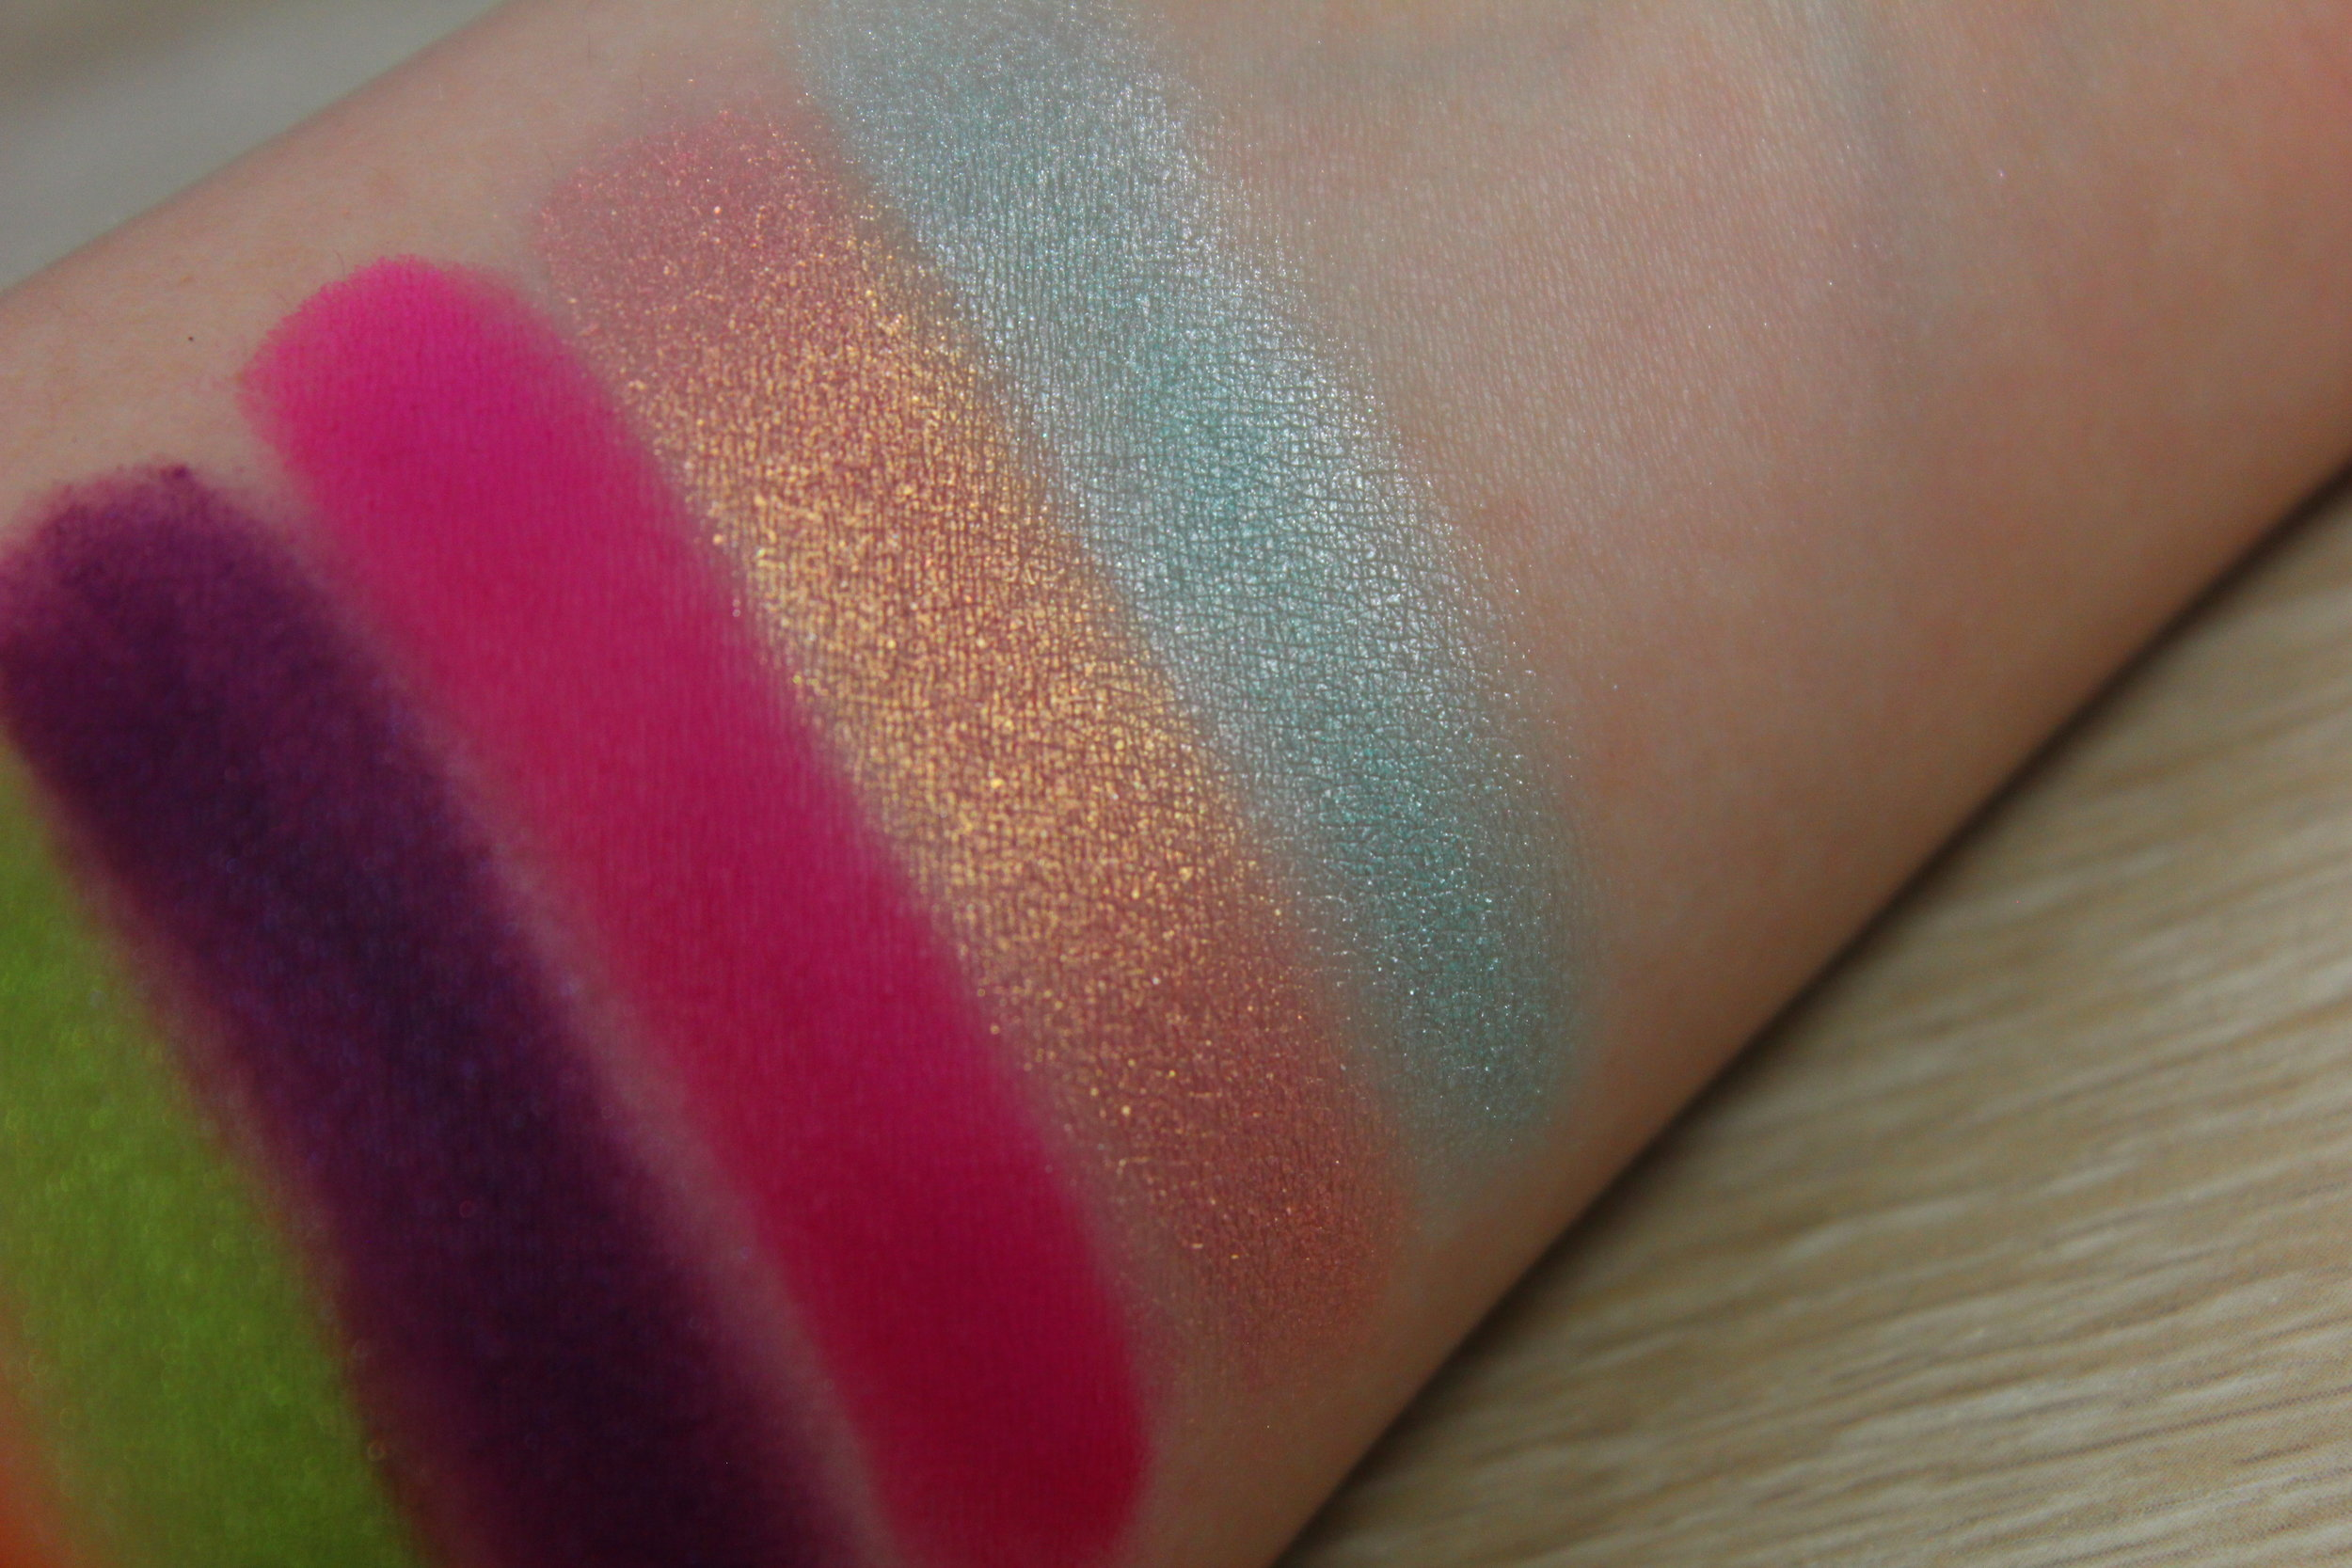 Sugarpill eyeshadow swatches - Kitten Parade & Candycrush